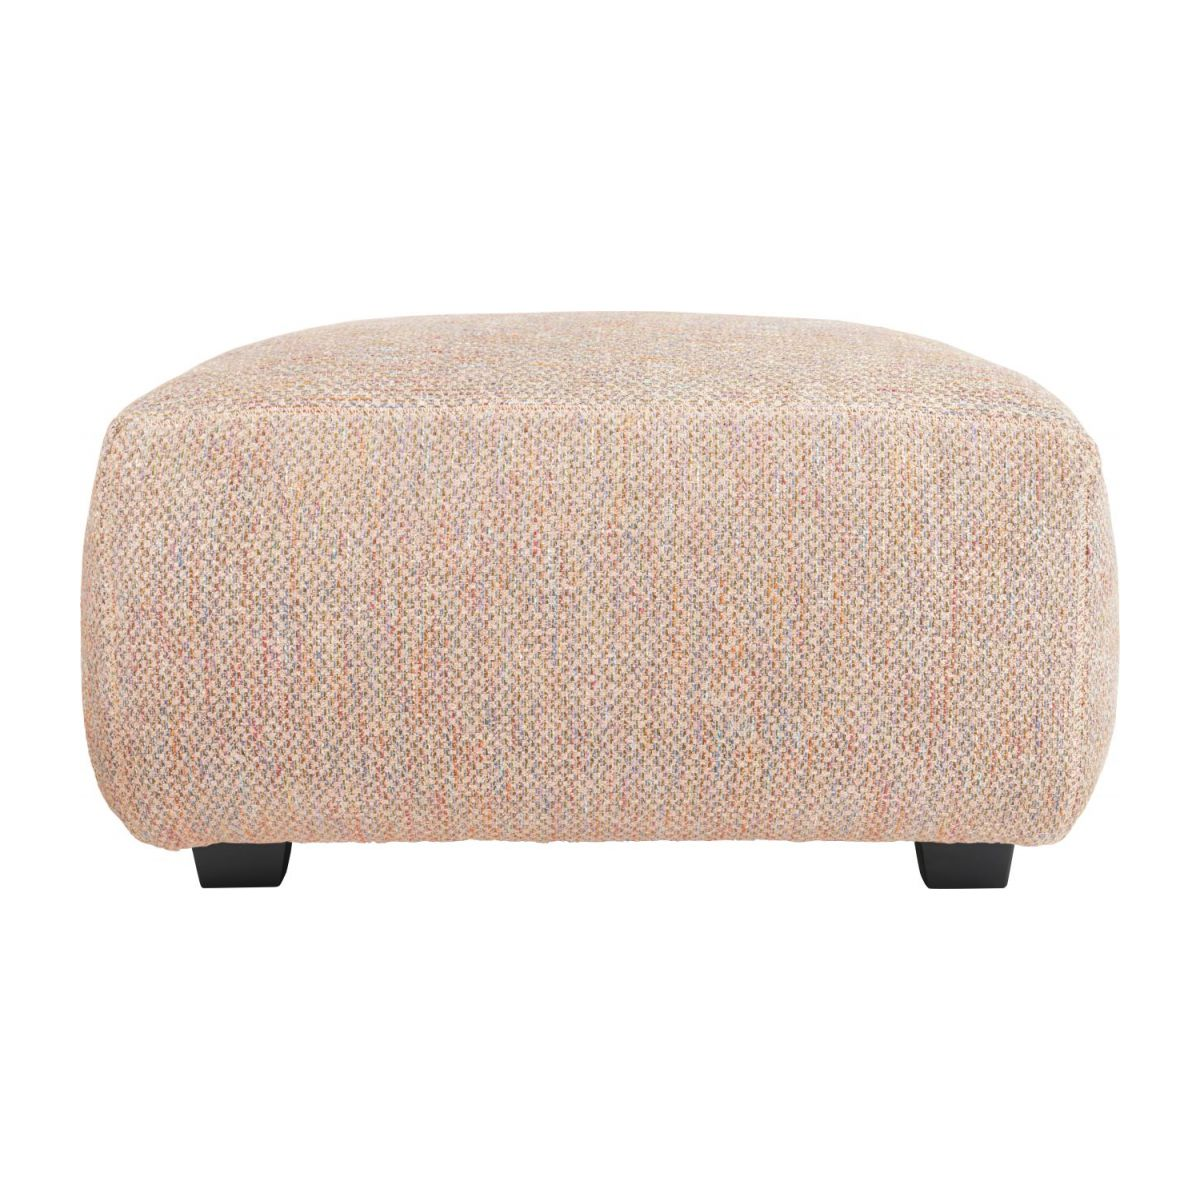 Footstool in Bellagio fabric, passion orange n°4